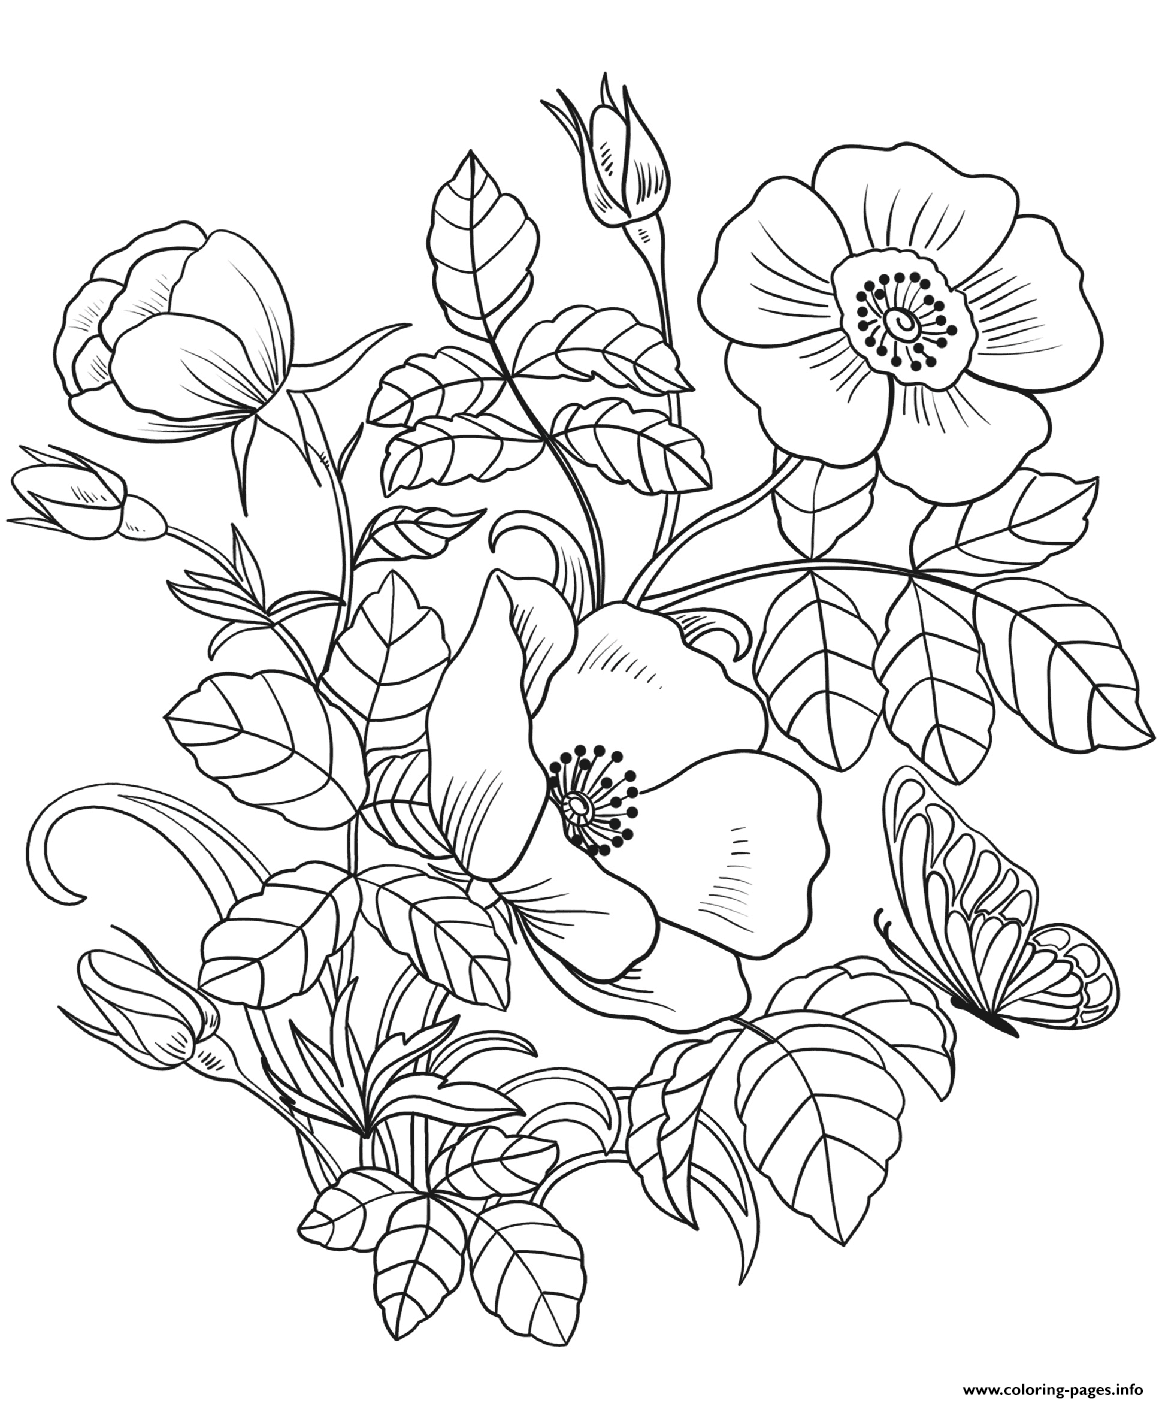 coloring pages about flowers free easy to print flower coloring pages tulamama about pages coloring flowers